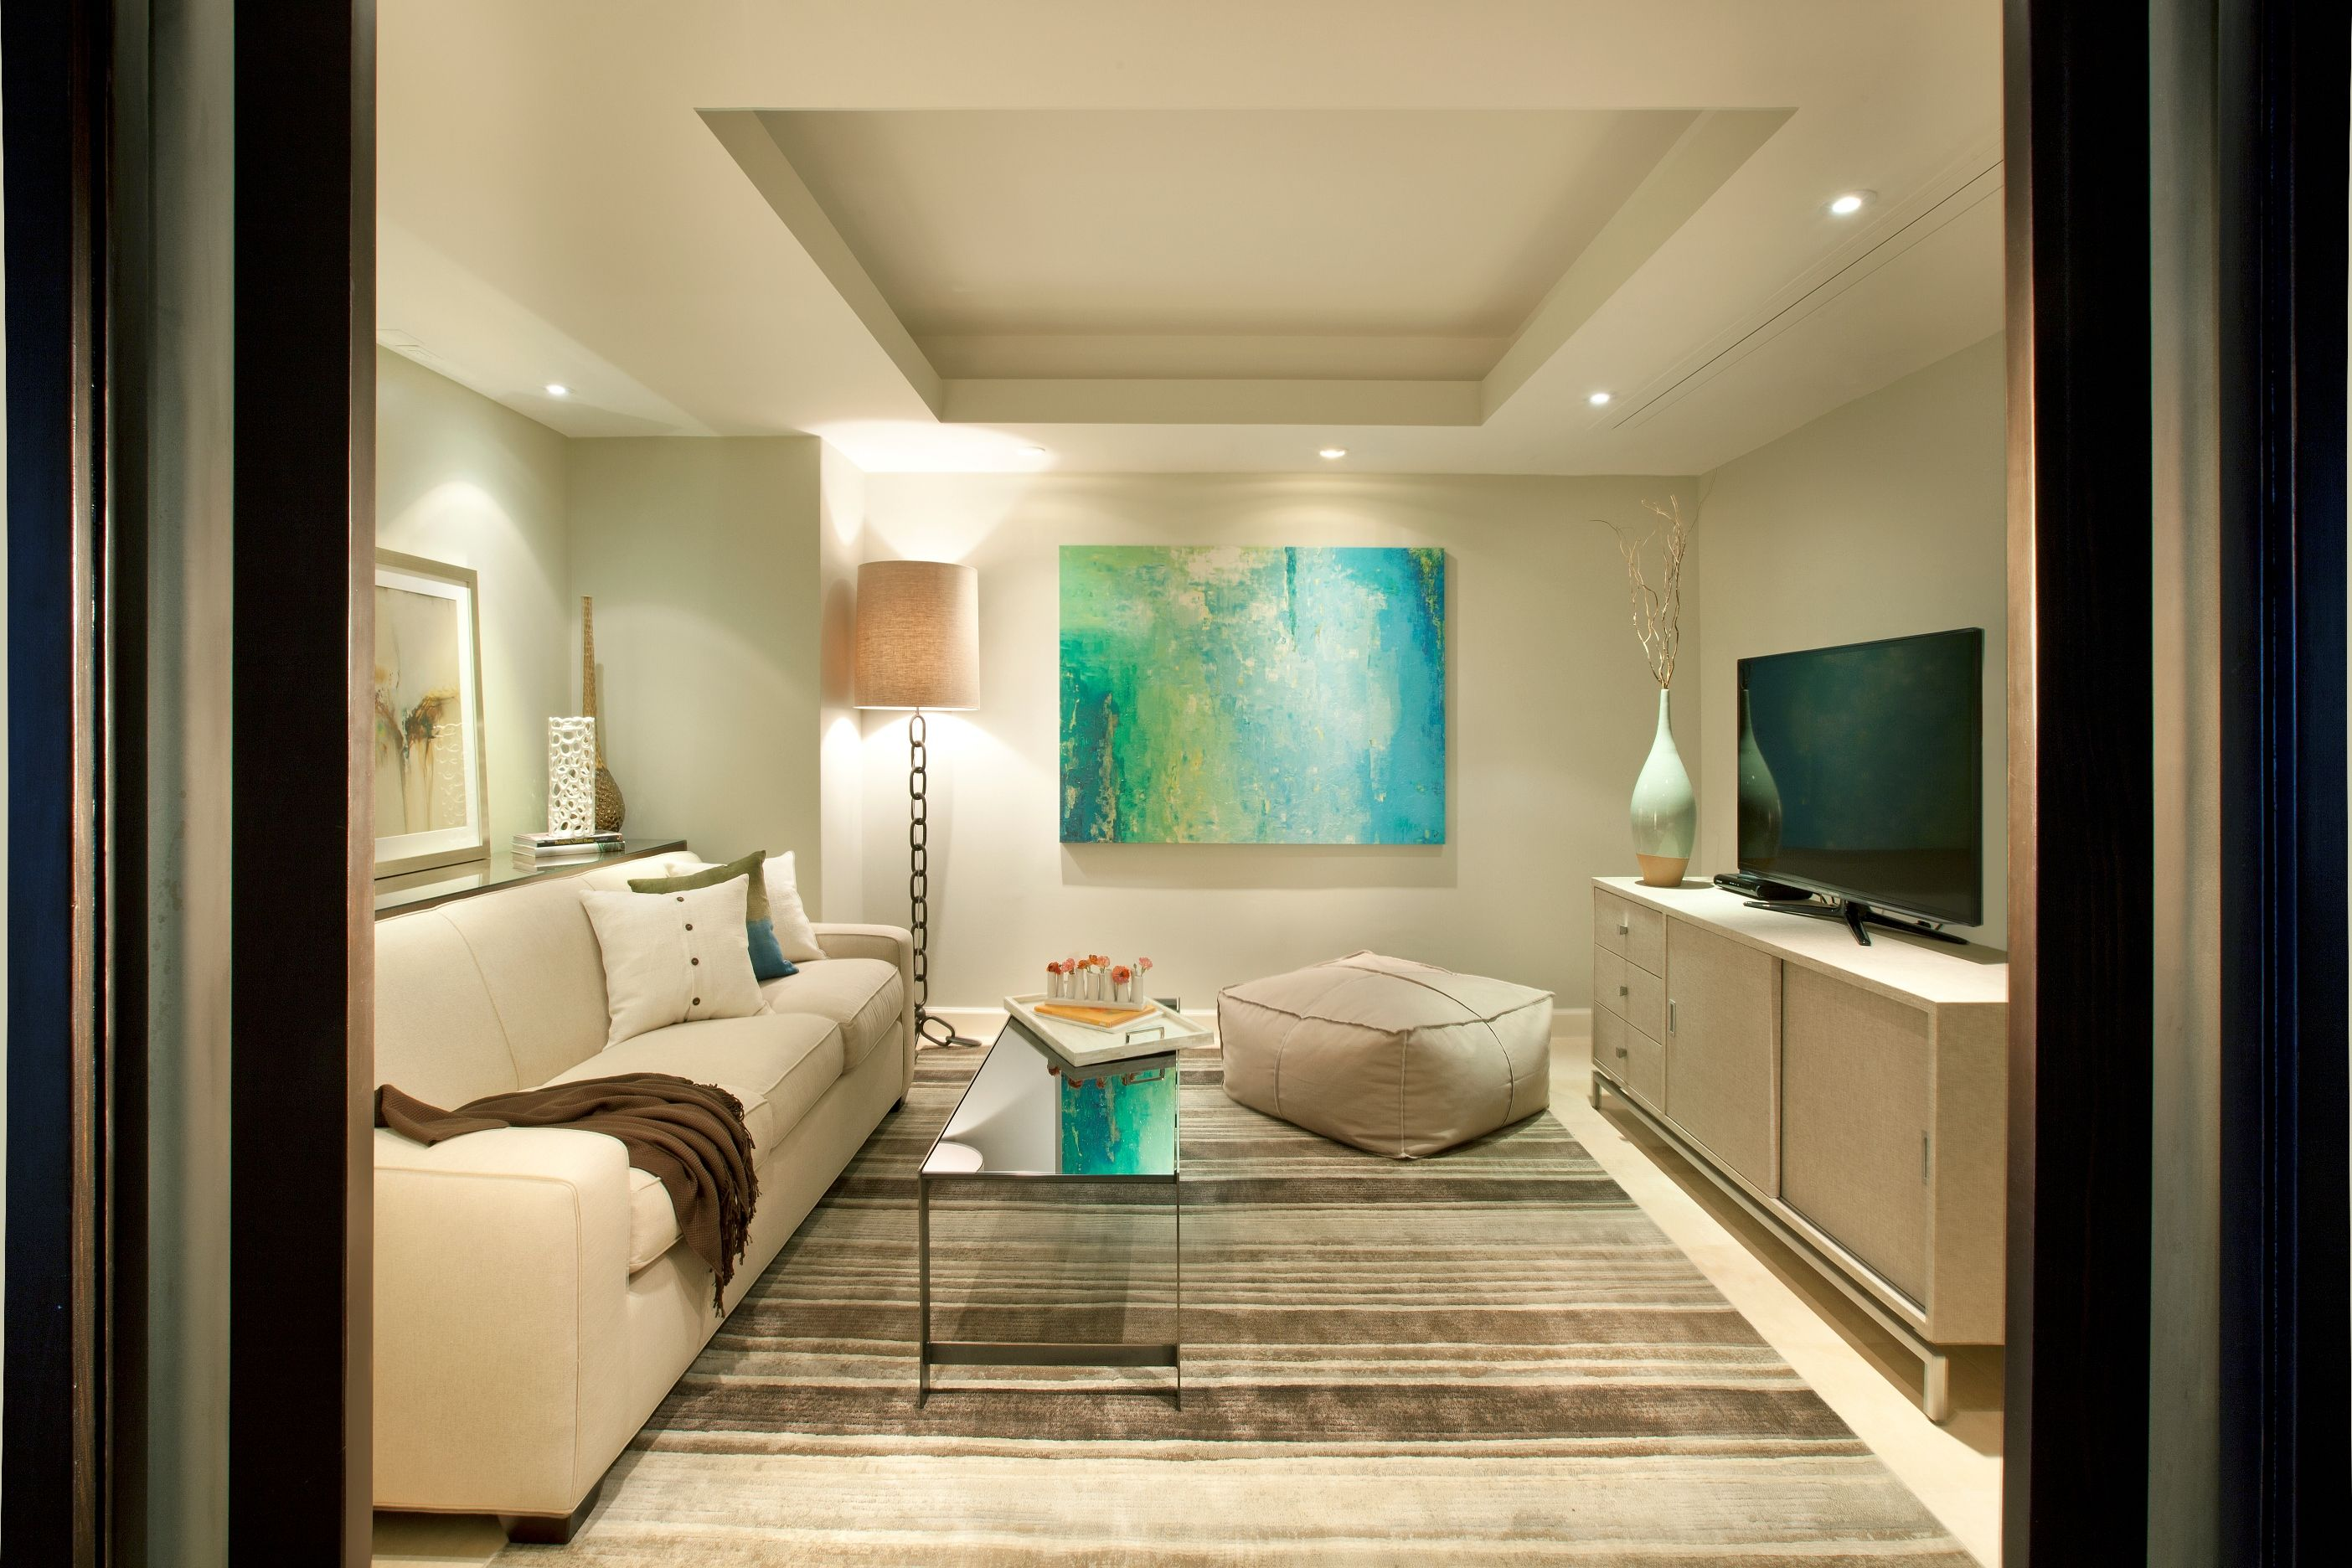 TV & Media Room - DKOR Interiors - Interior Designers - Miami - Modern